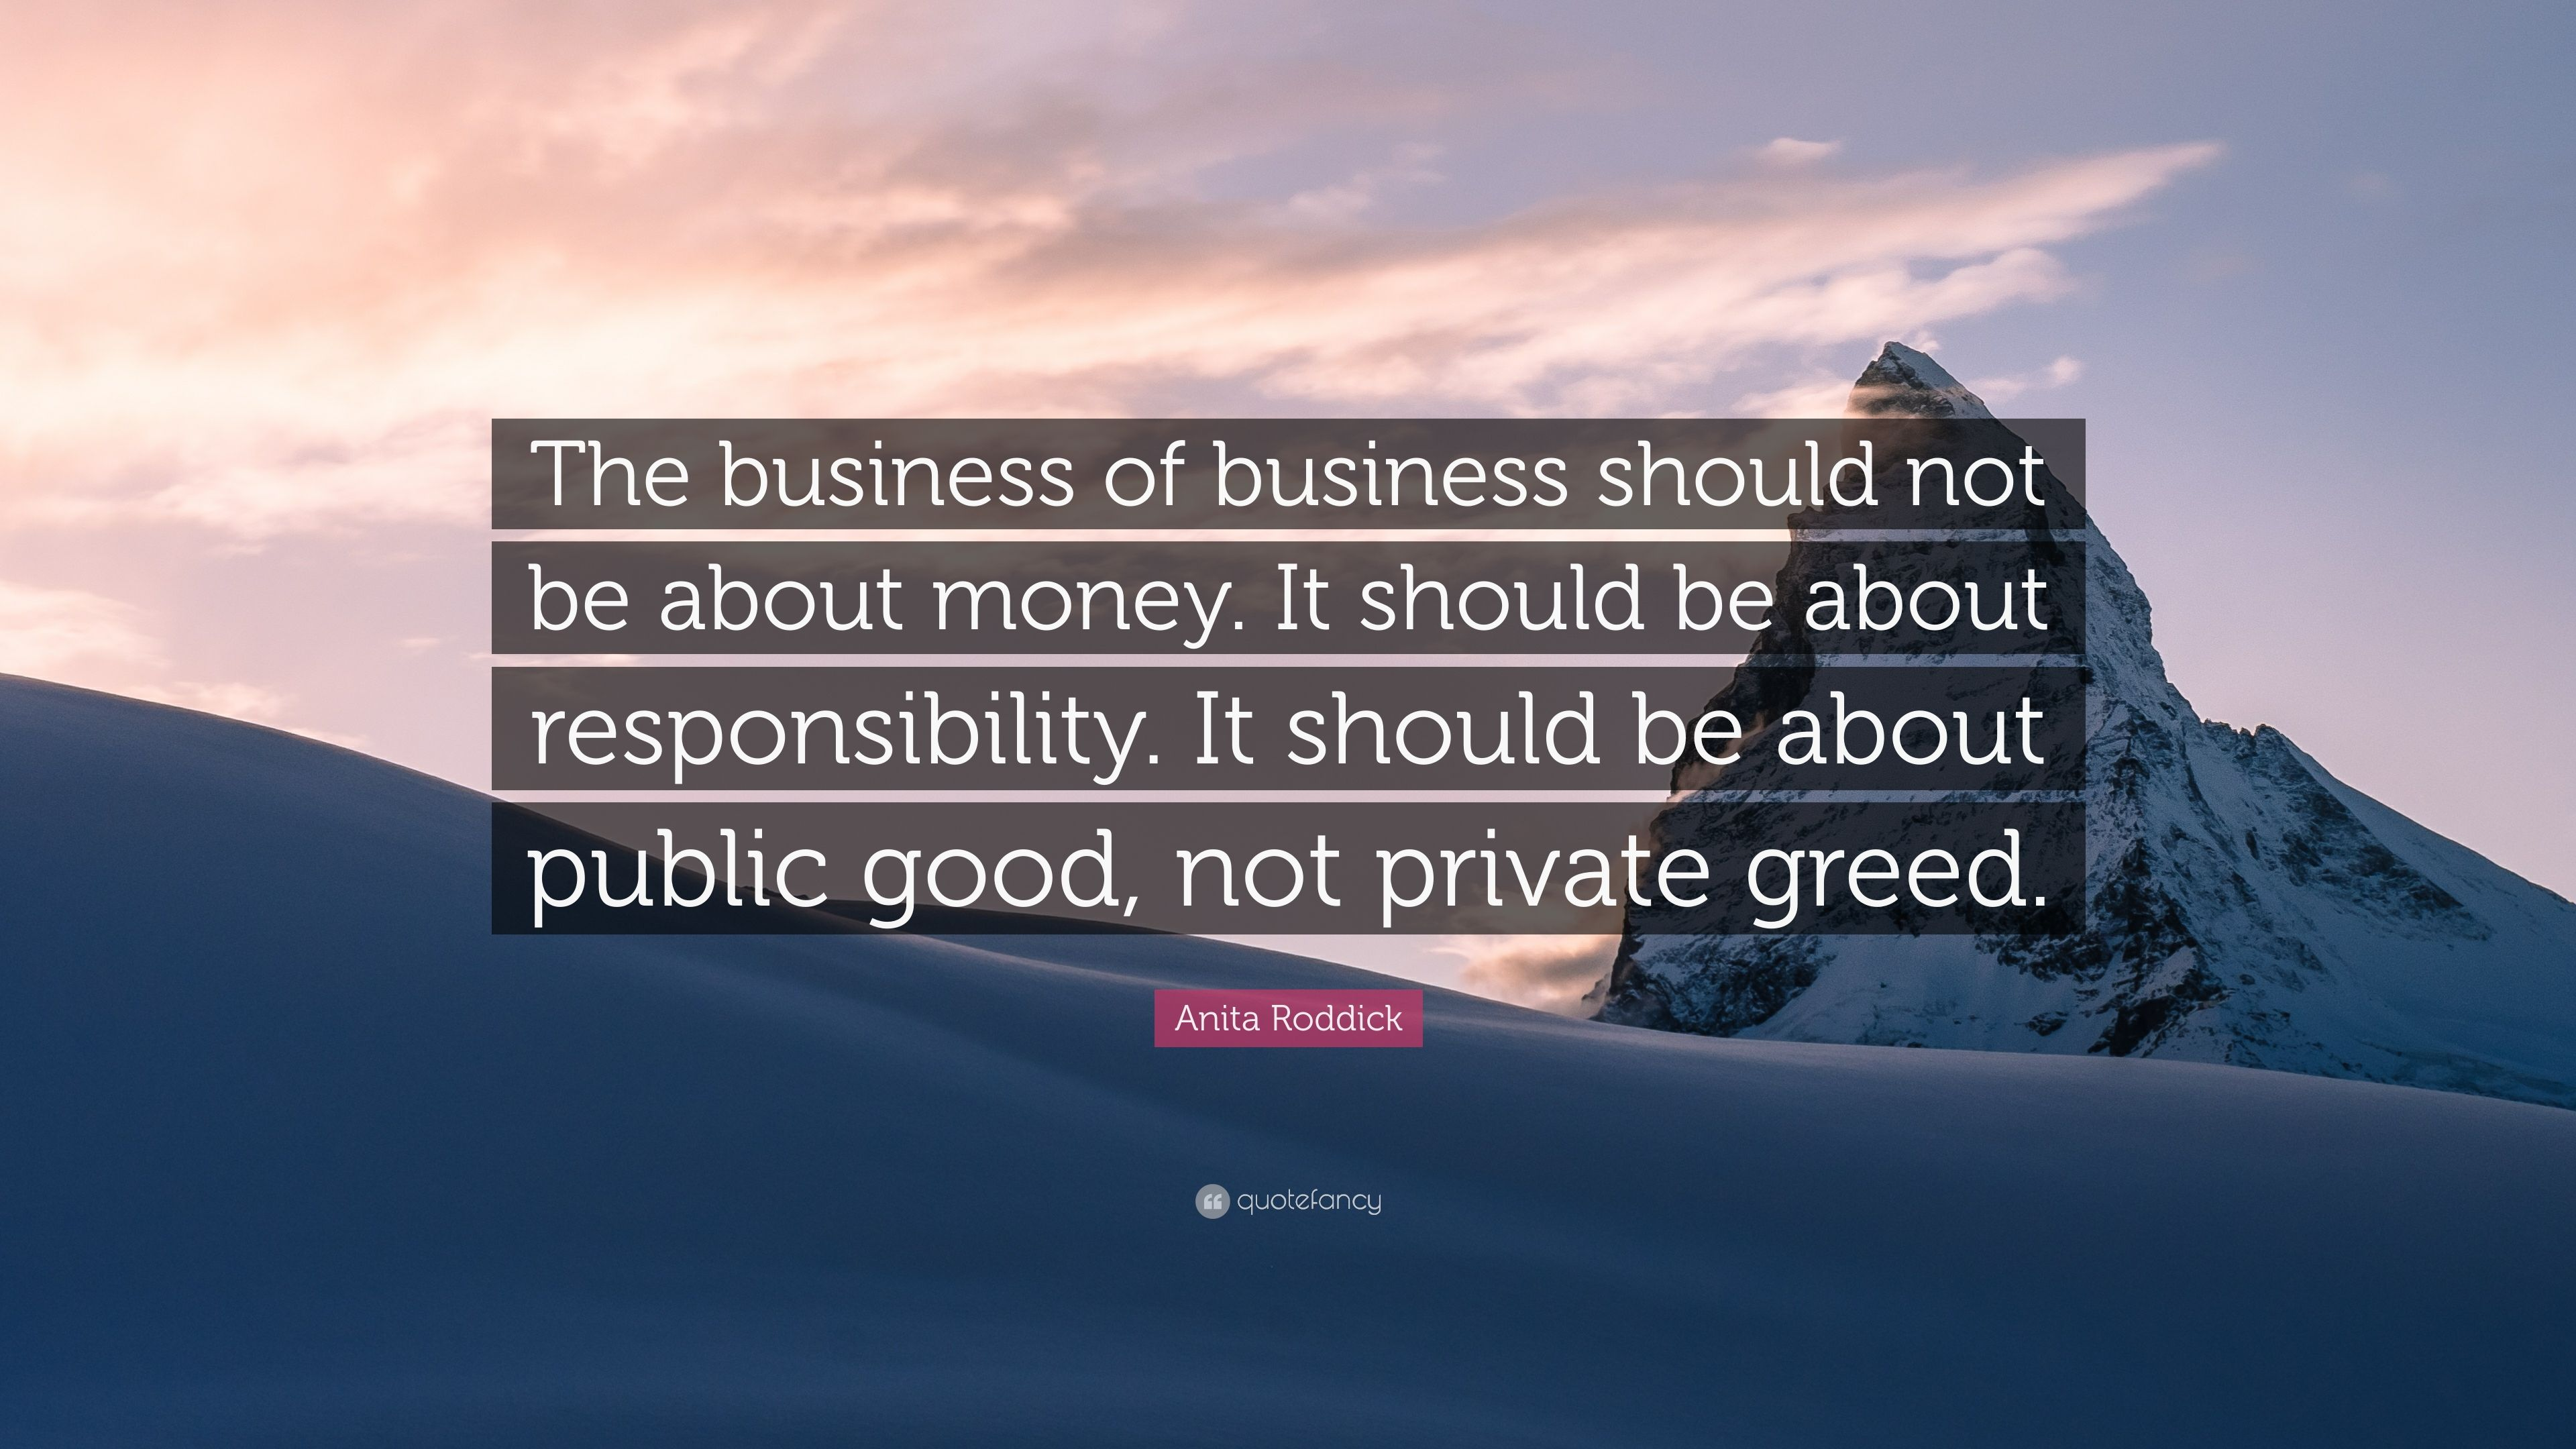 Why is social responsibility important to a business?